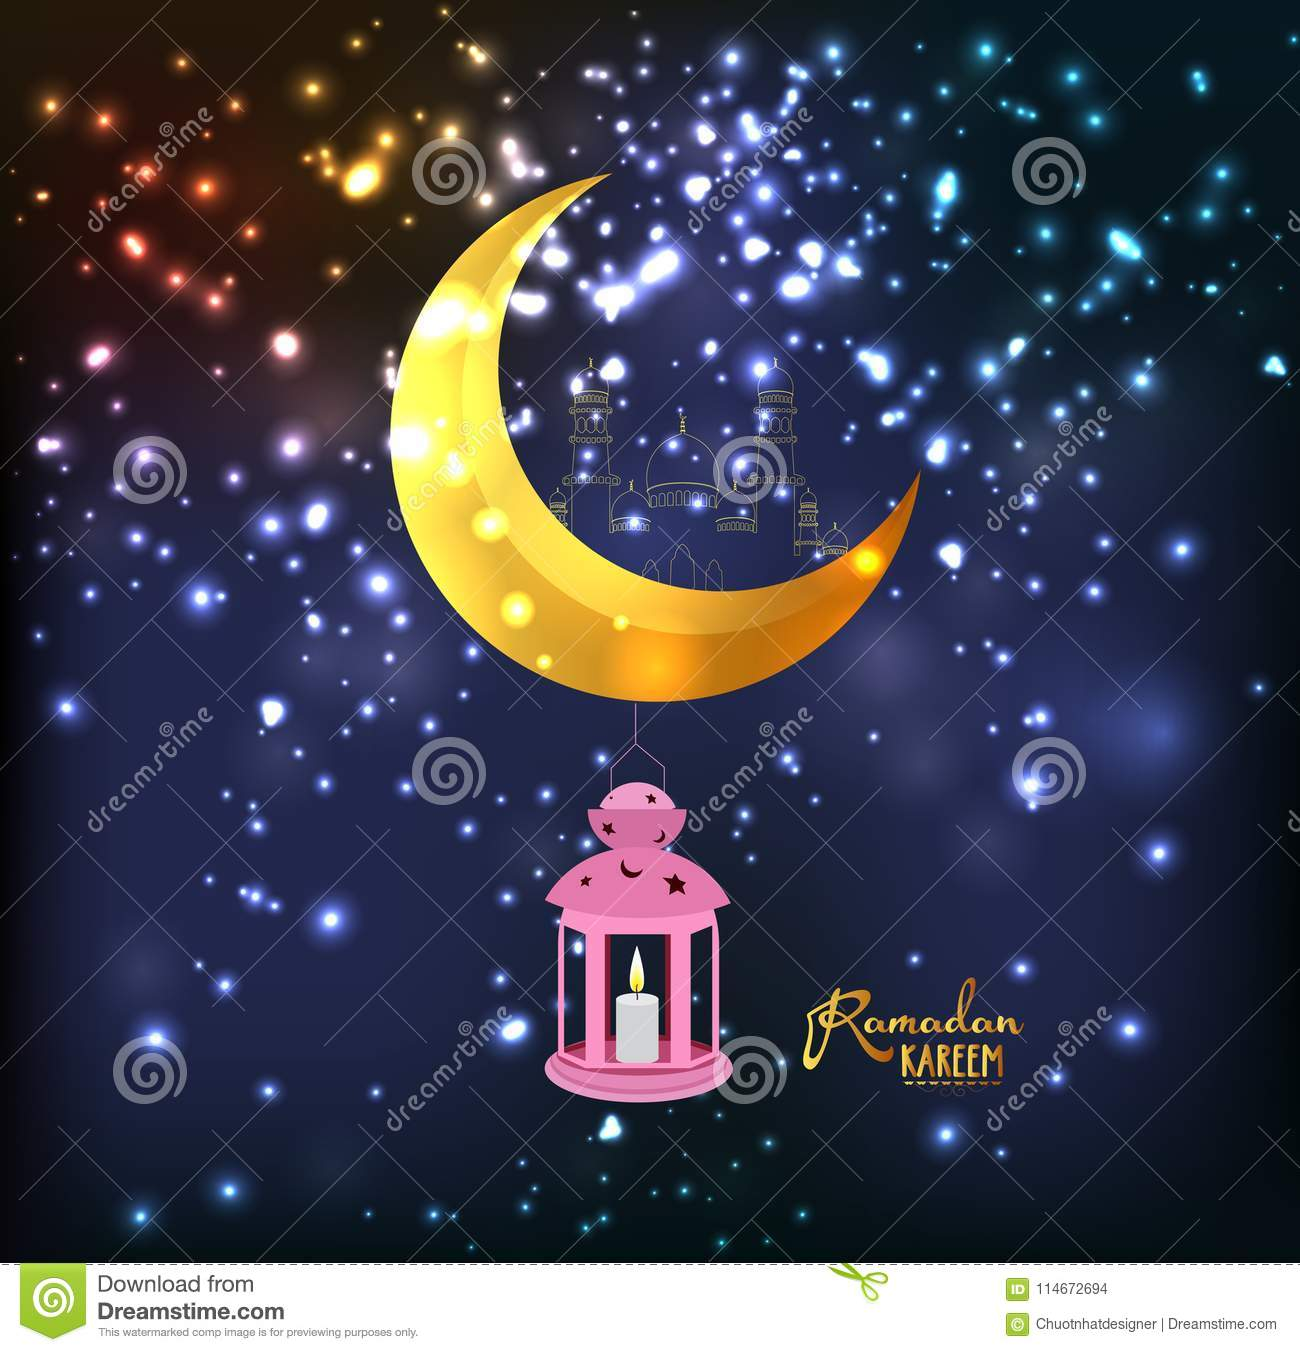 eid milad un nabi design mosque silhouette in night sky with crescent fireworks stock illustration illustration of backgrounds mosque 114672694 https www dreamstime com eid milad un nabi design mosque silhouette night sky crescent fireworks ramadan kareem lantern design background image114672694